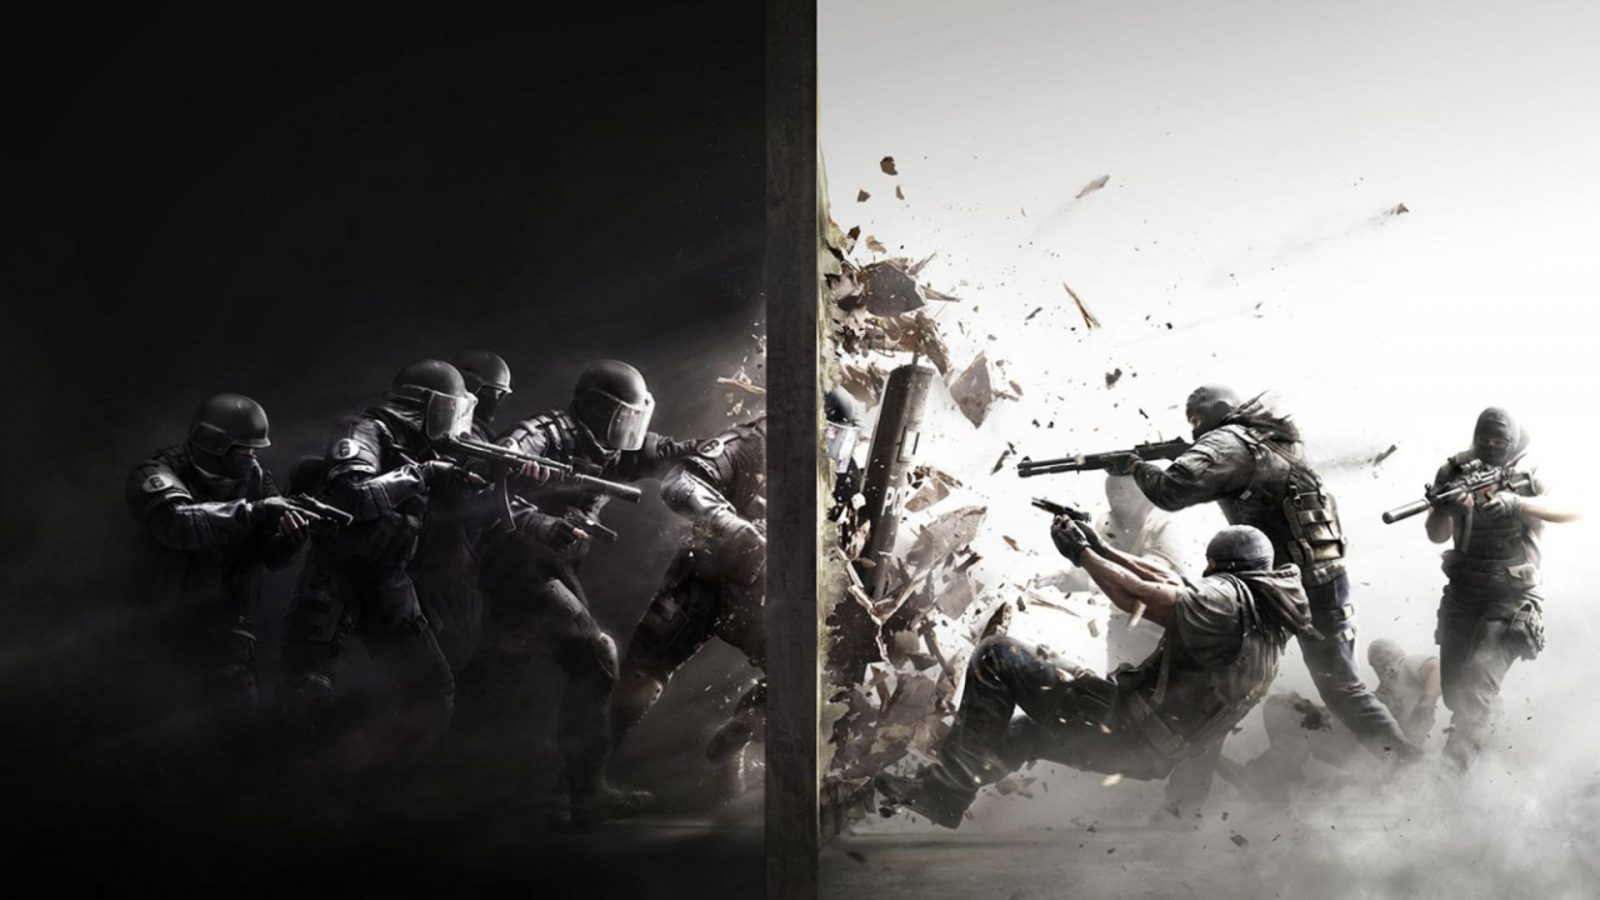 Rainbow Six Siege Changes Core Dev Team, as Former Leads Move to New Projects